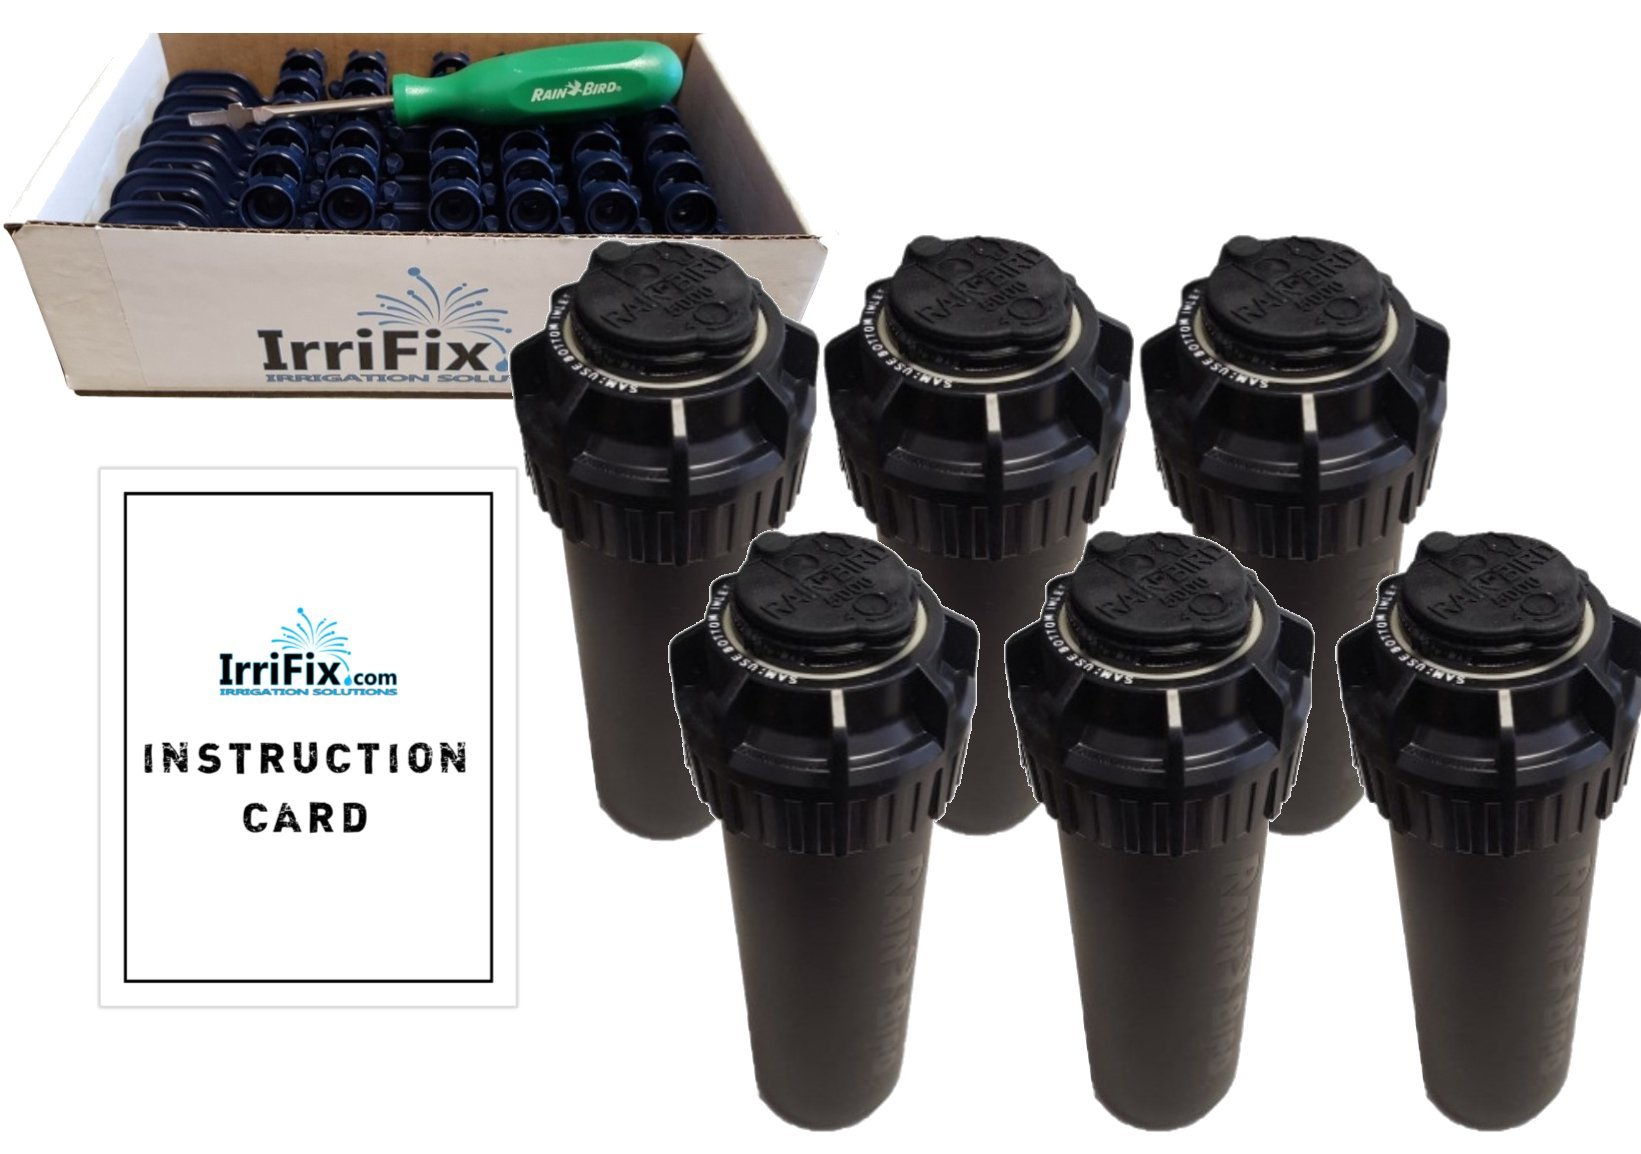 Rain Bird 5000 Series Seal-A-Matic Sprinkler Heads Bundle - 6 Pack 5004PCSAM SAM Rotors with IrriFix Nozzle Box Including 6 Nozzle Trees, 1 Rotortool Screwdriver, and IrriFix Instruction Sheet